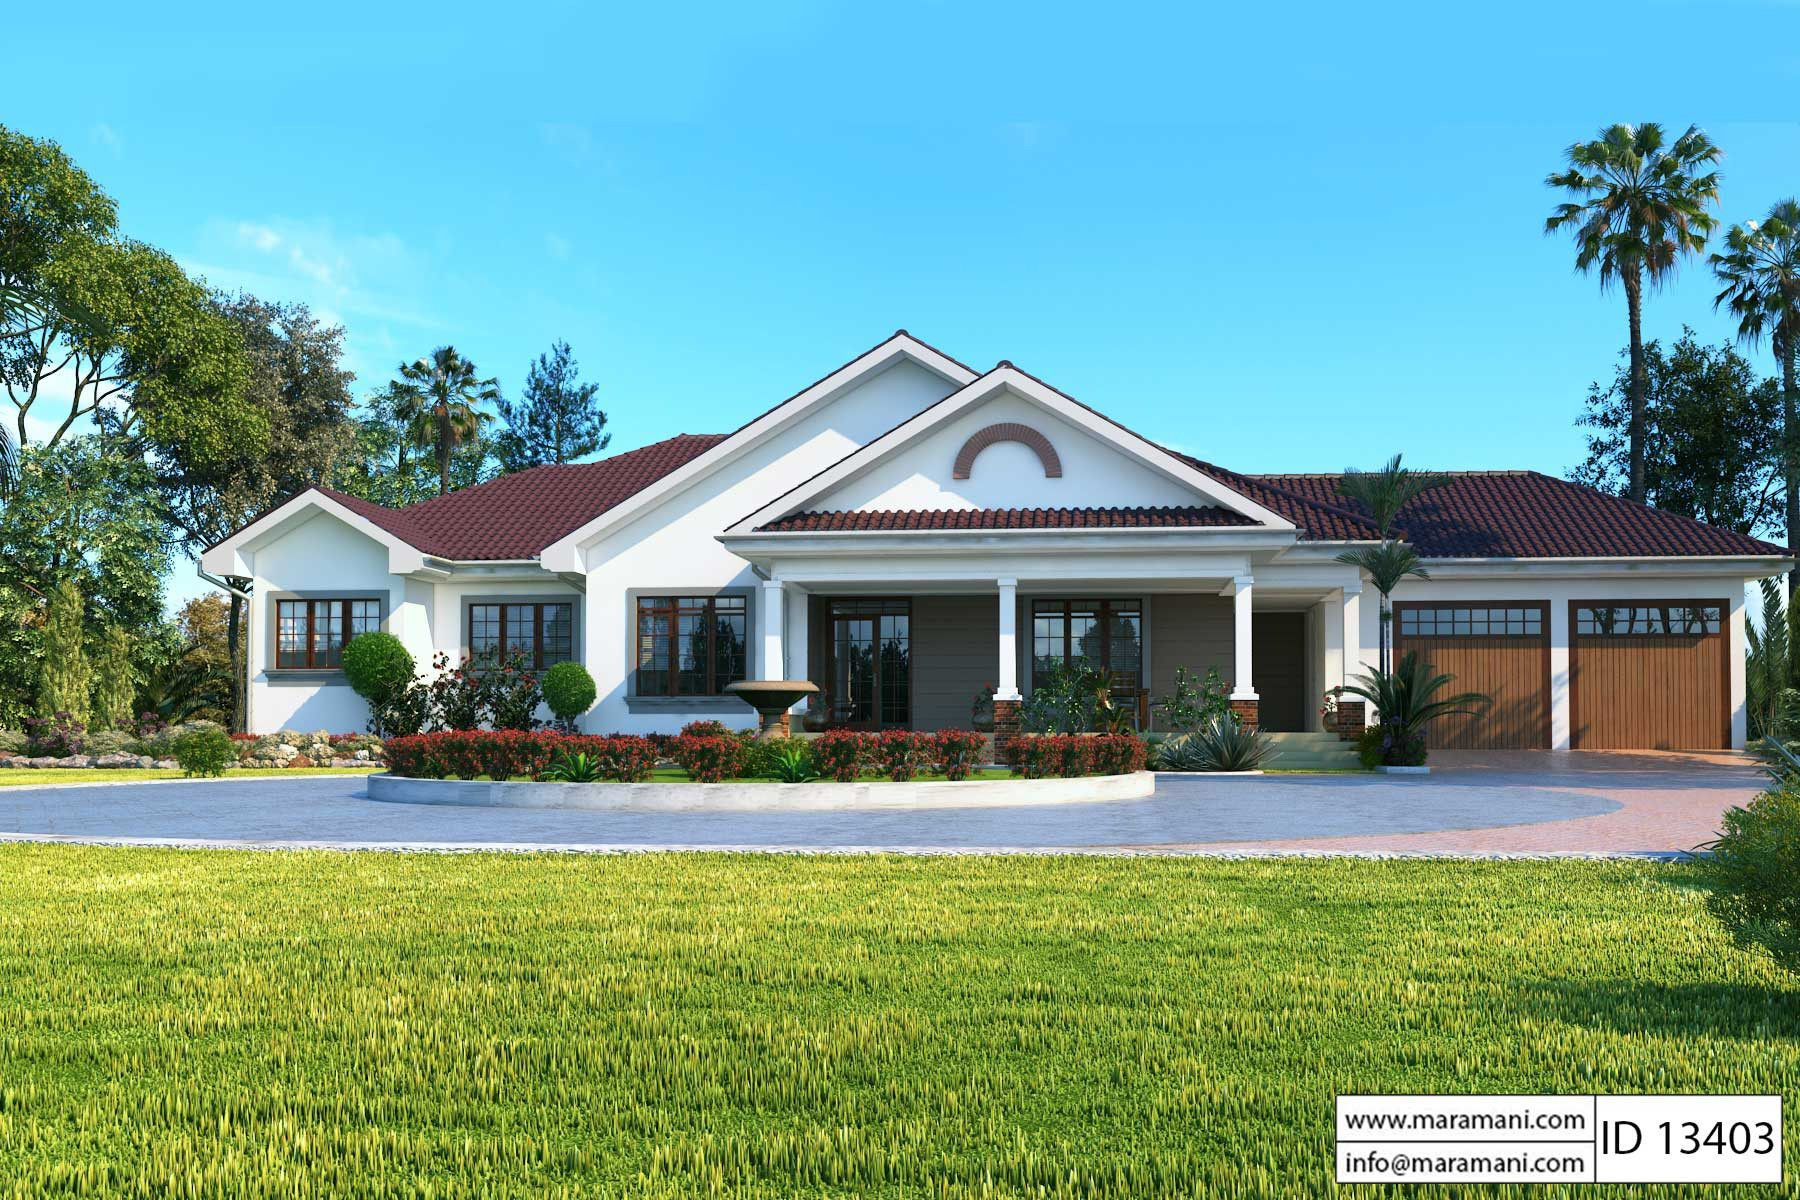 3 bedroom bungalow with garage id 13403 house plans by for Id home design